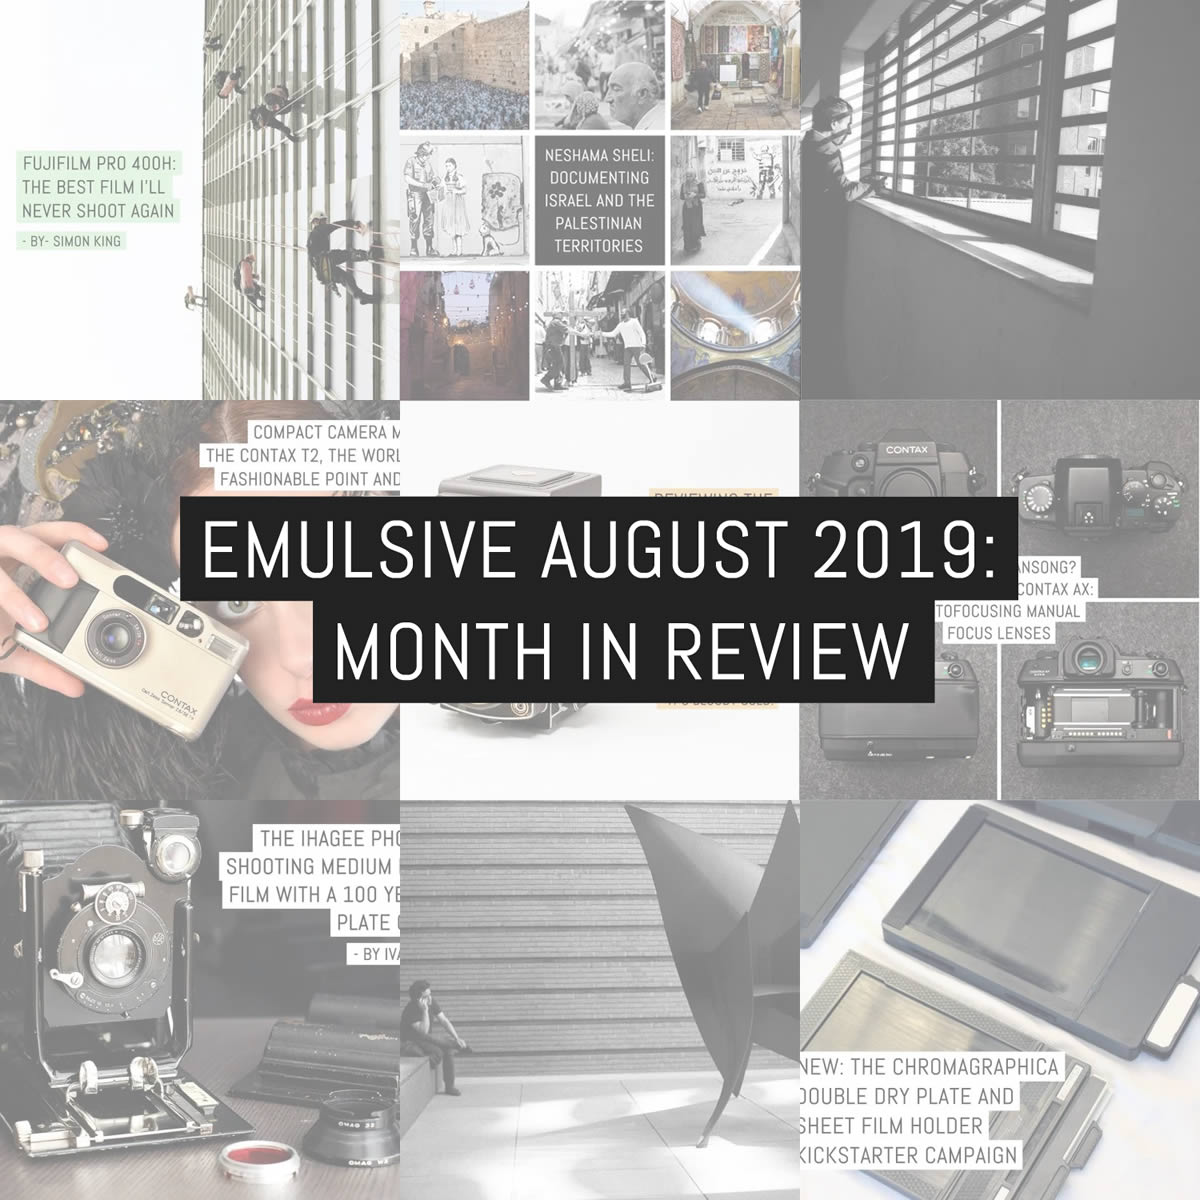 EMULSIVE August 2019: month in review